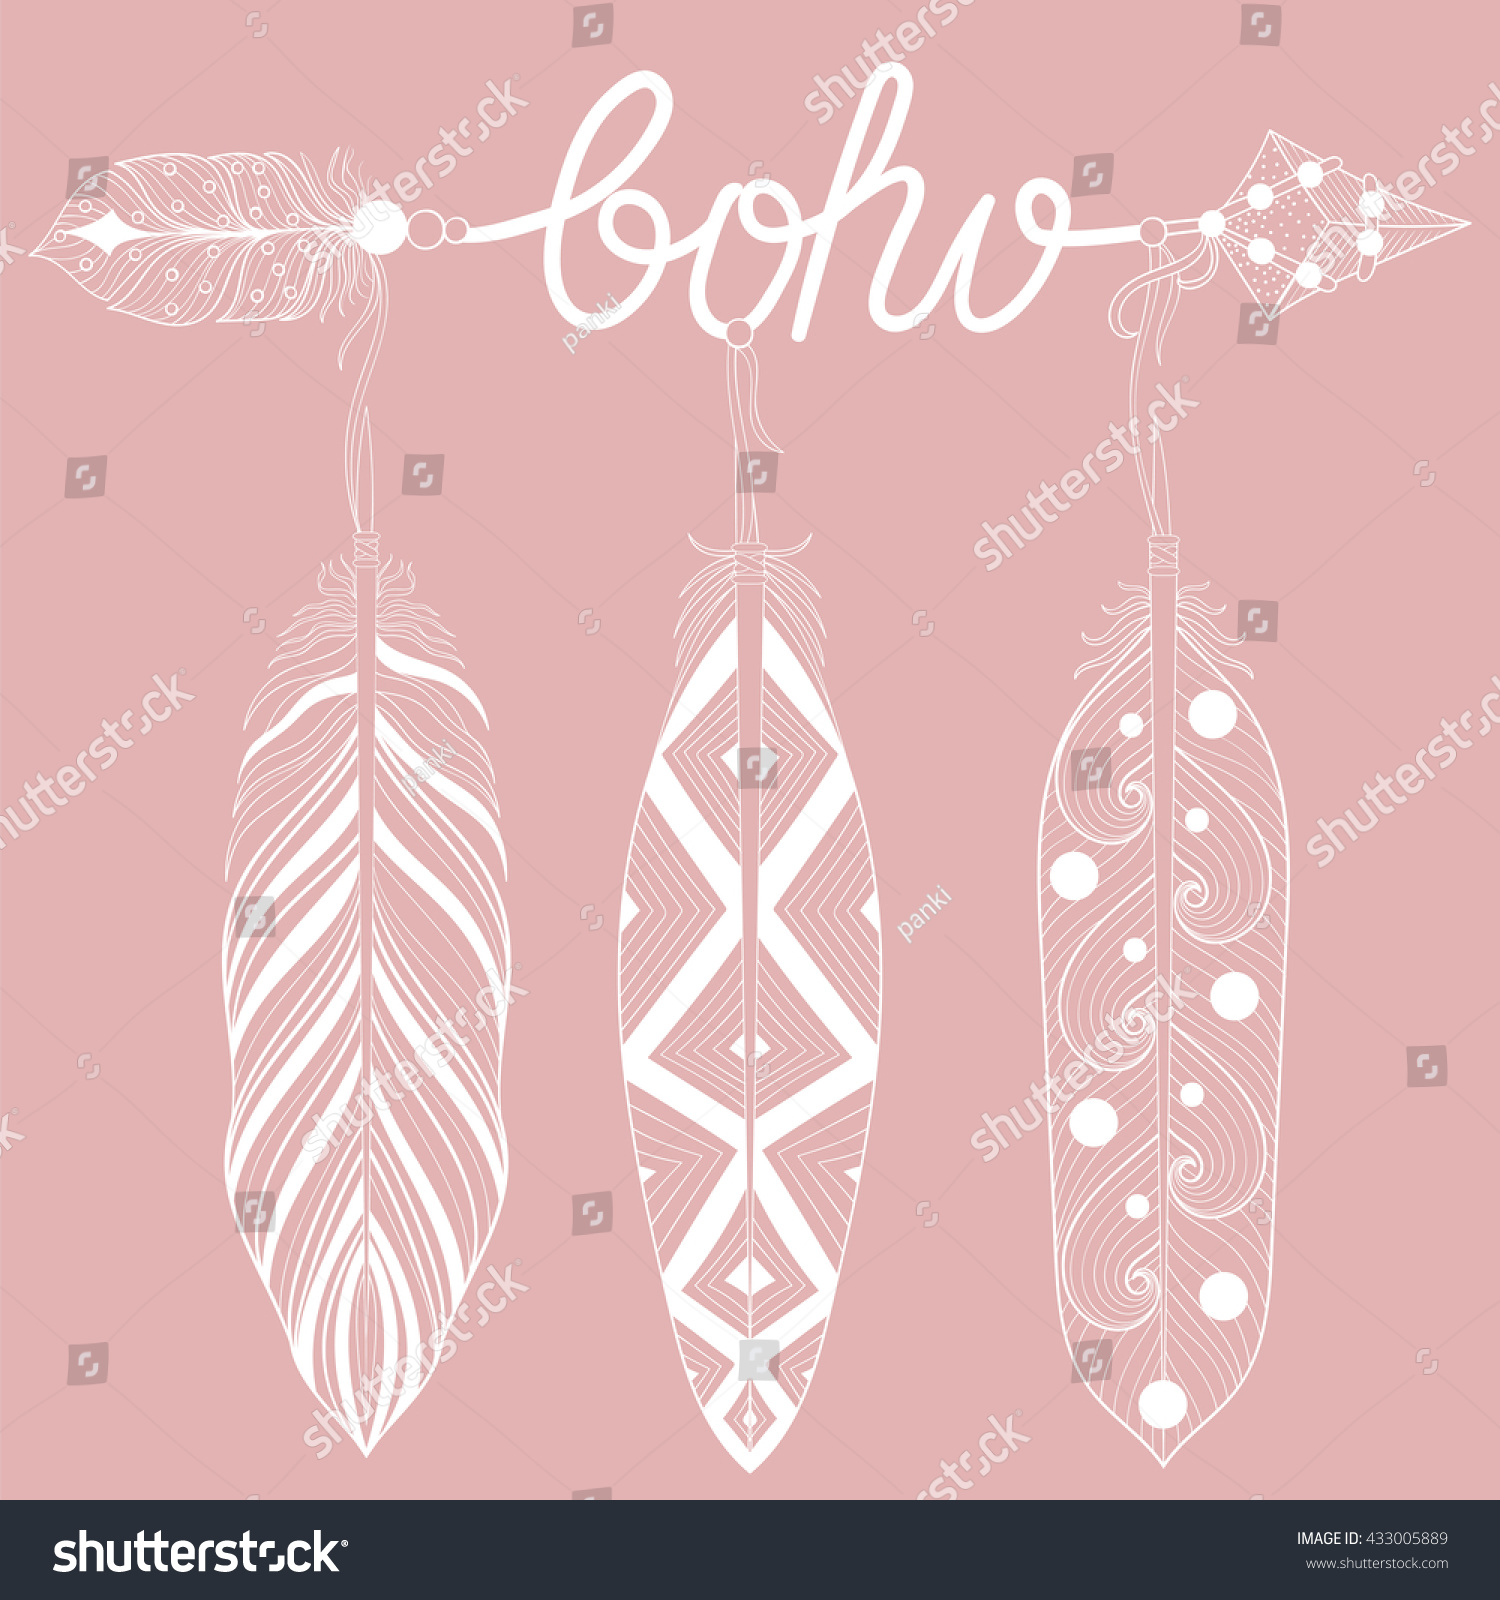 Bohemian Arrow On Pink Background Letters Stock Vector (Royalty Free ...